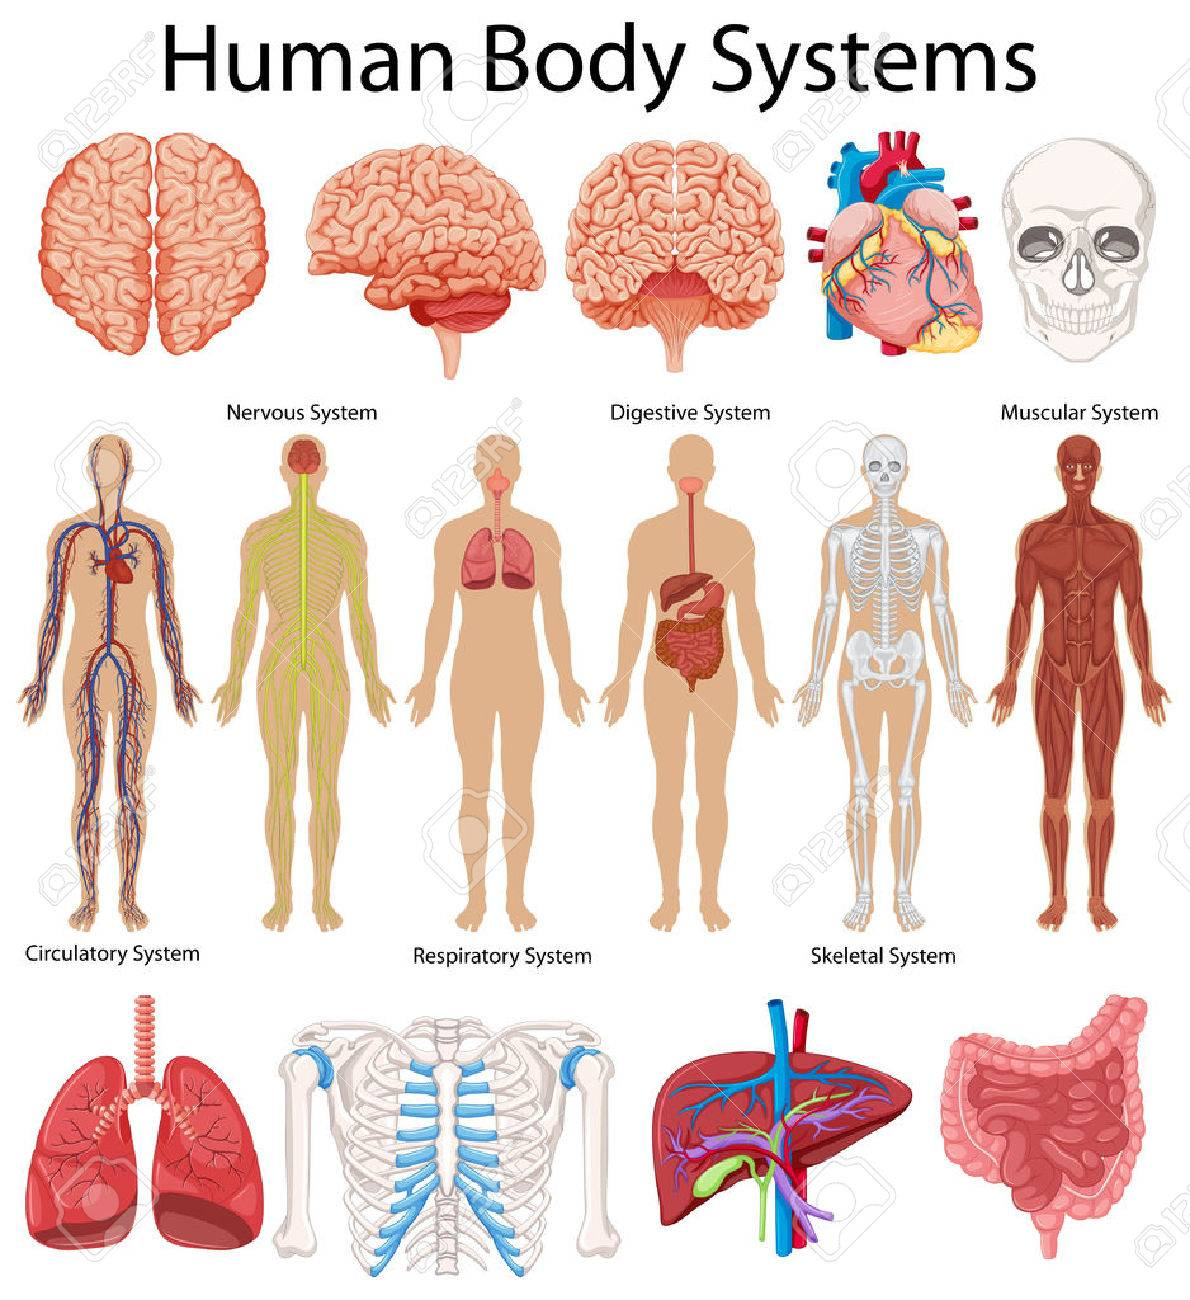 Diagram showing human body systems illustration royalty free diagram showing human body systems illustration stock vector 62917371 ccuart Images